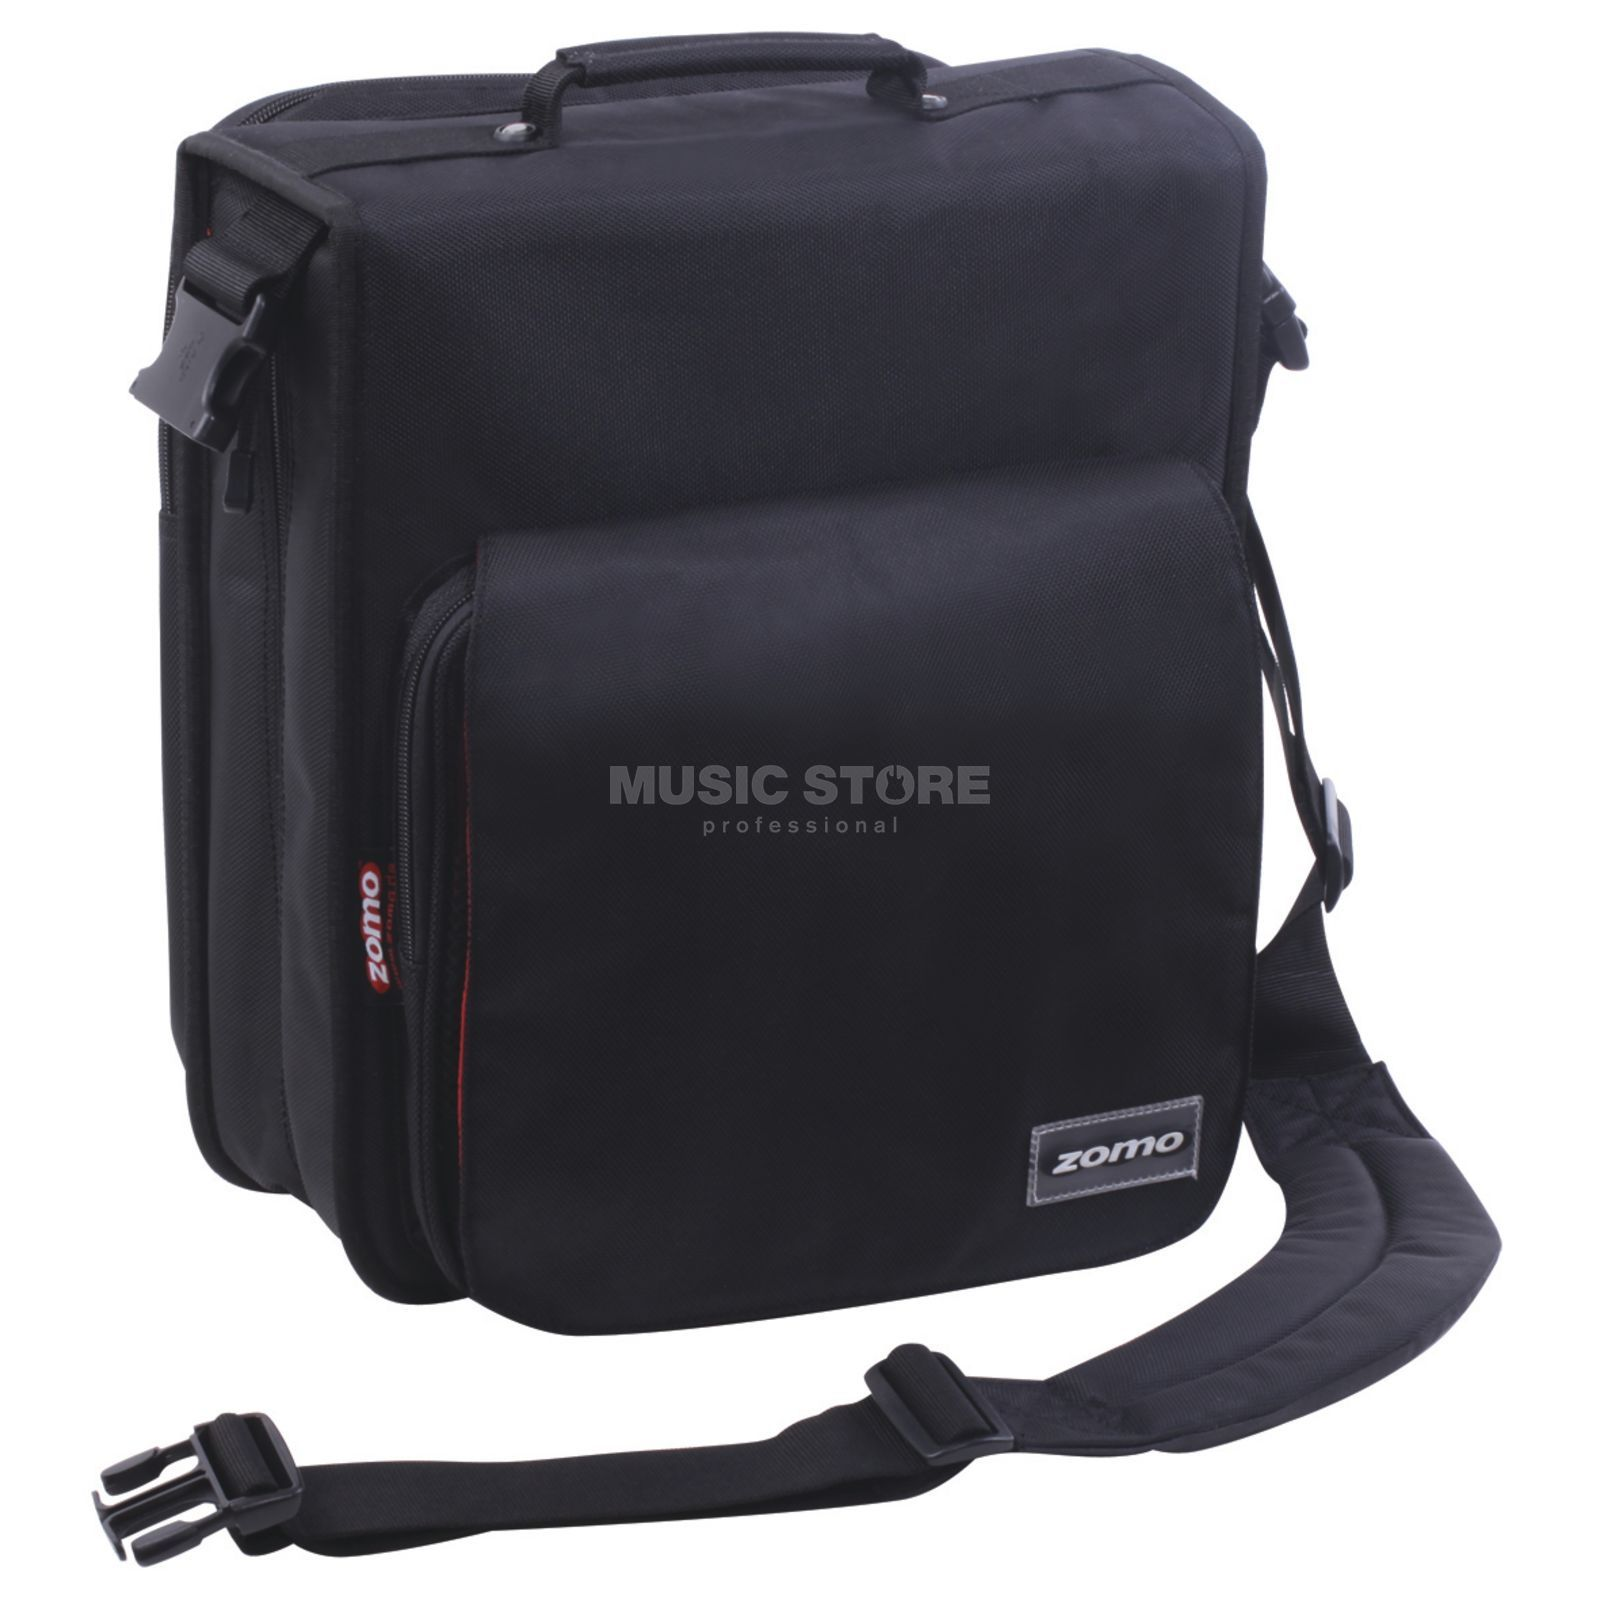 Zomo CD-Bag Large Premium - Black  Product Image